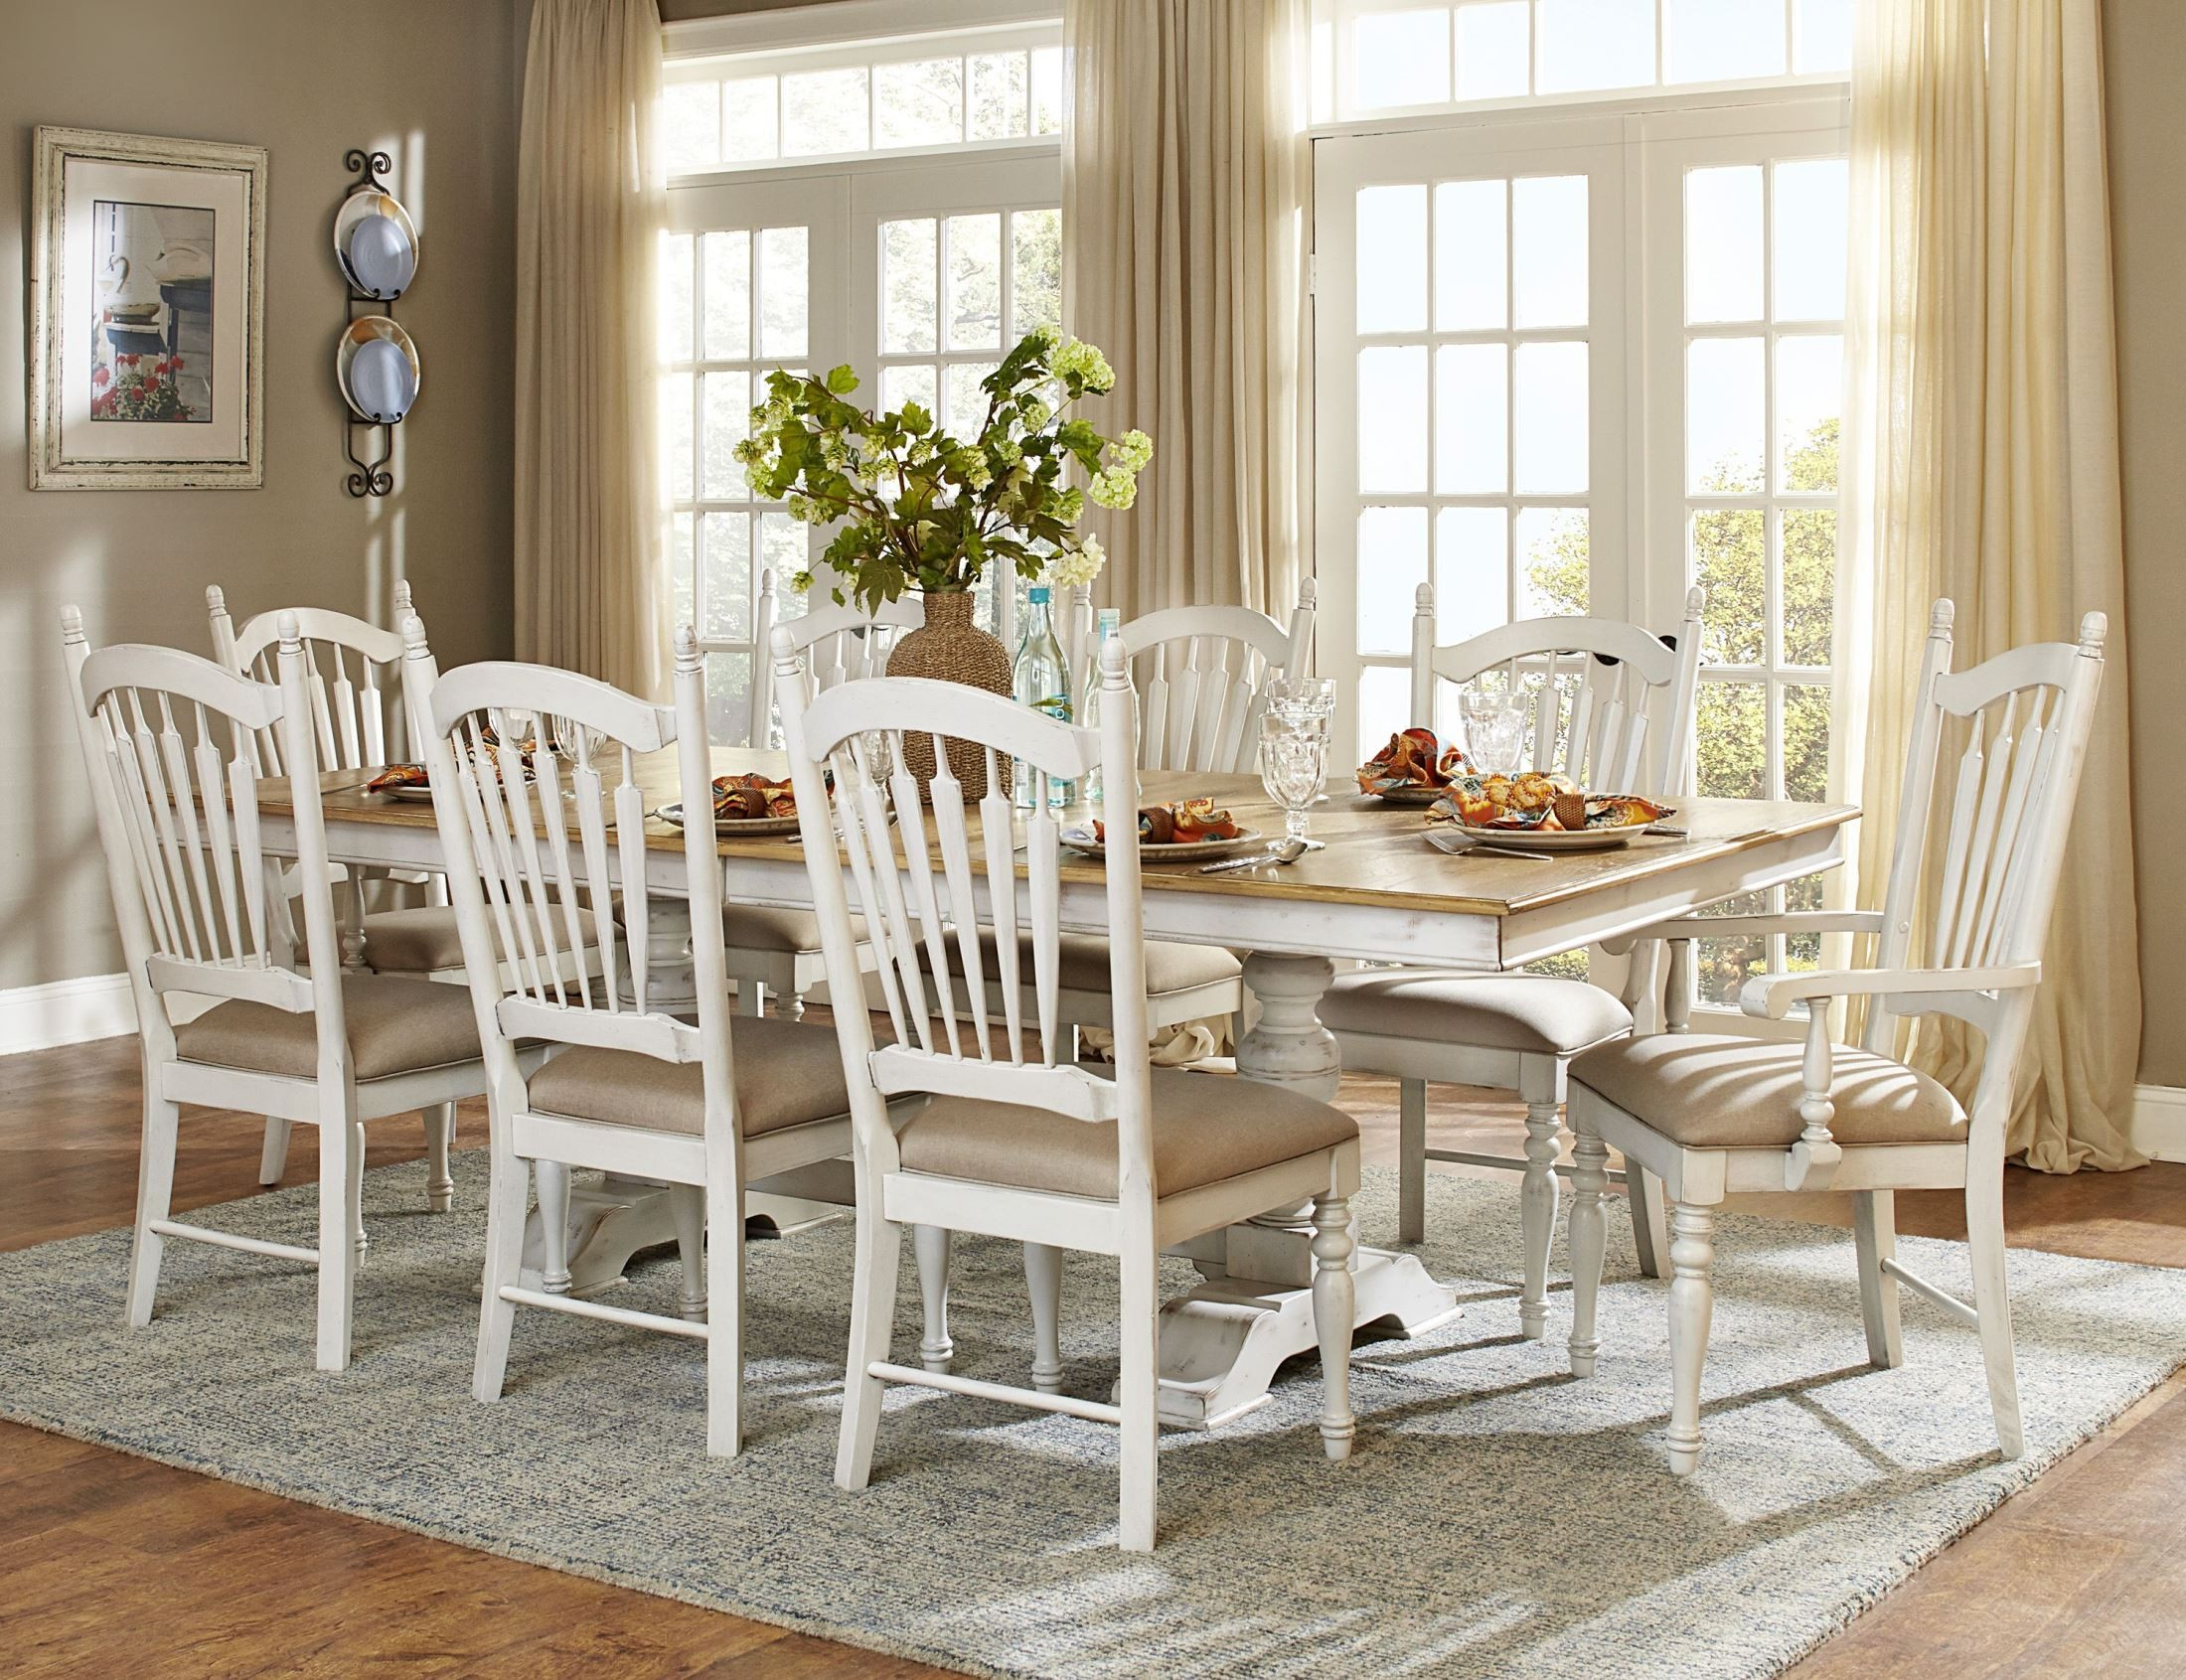 Delightful Hollyhock Distressed White Dining Room Set. 937681. 776777 Part 19